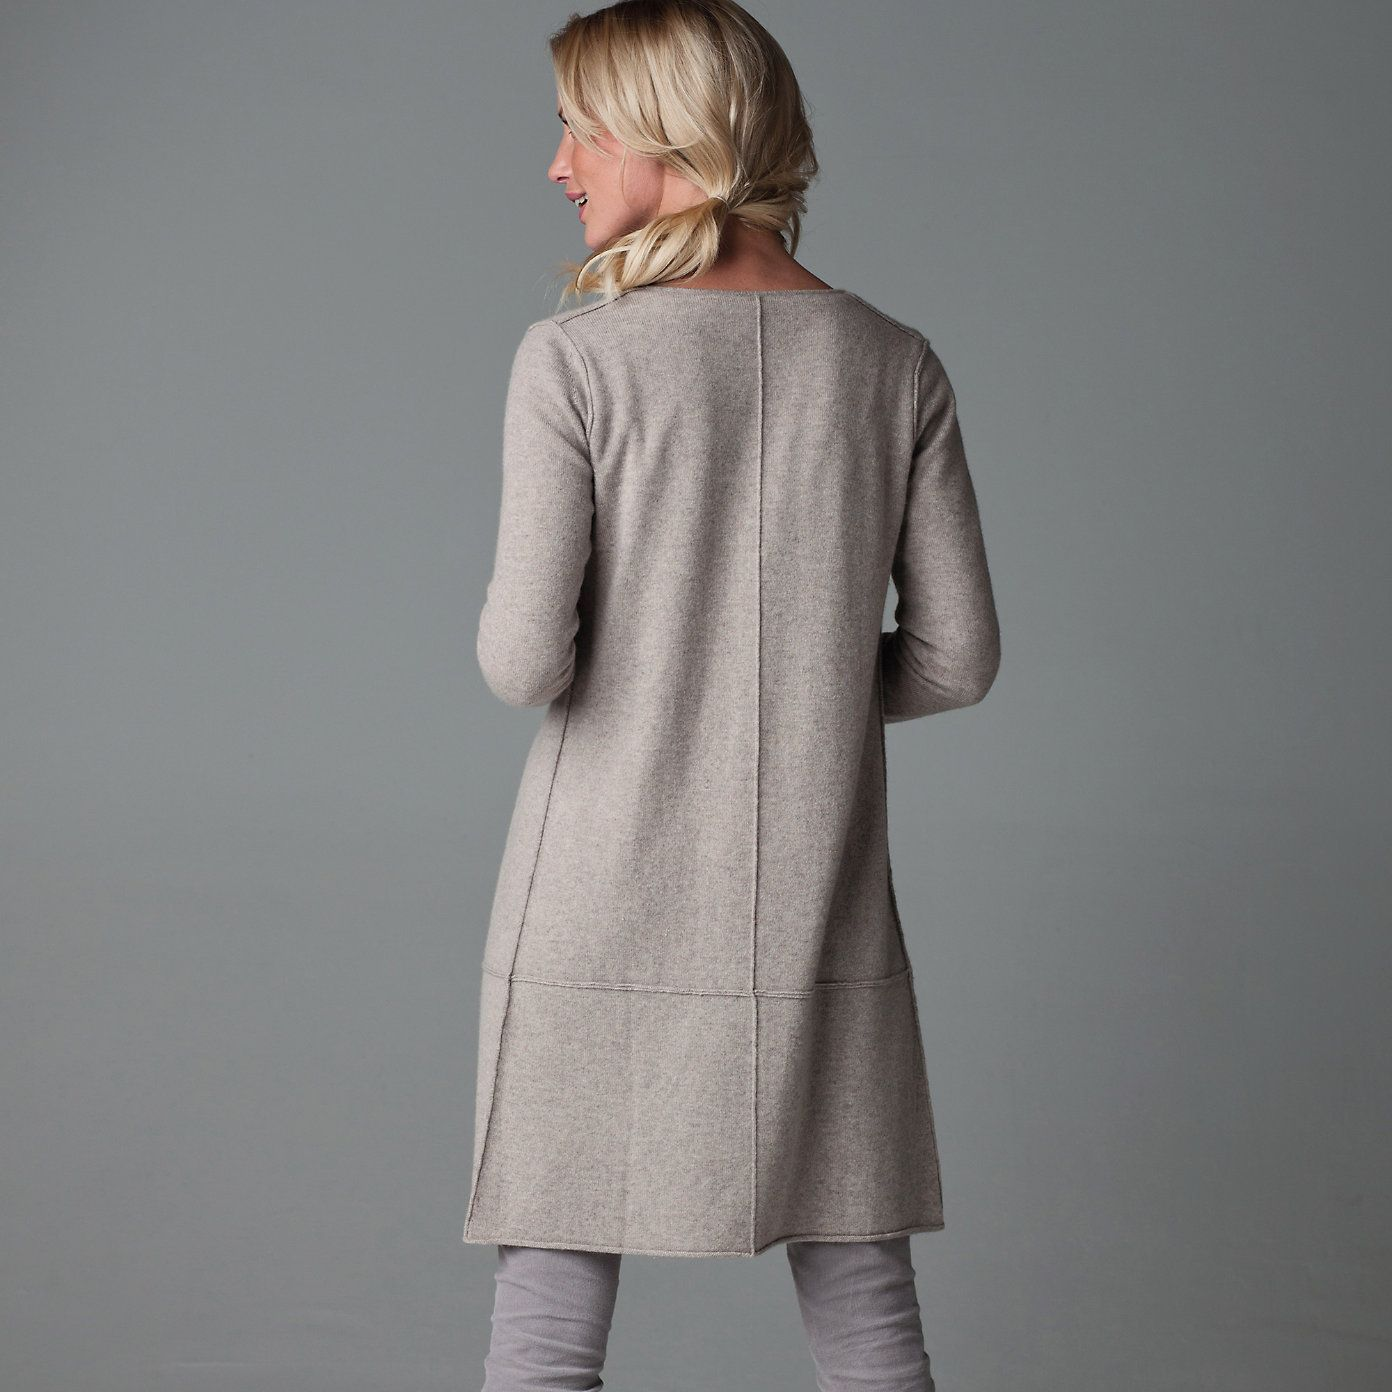 Cashmere Longline Cardigan - Taupe from The White Company